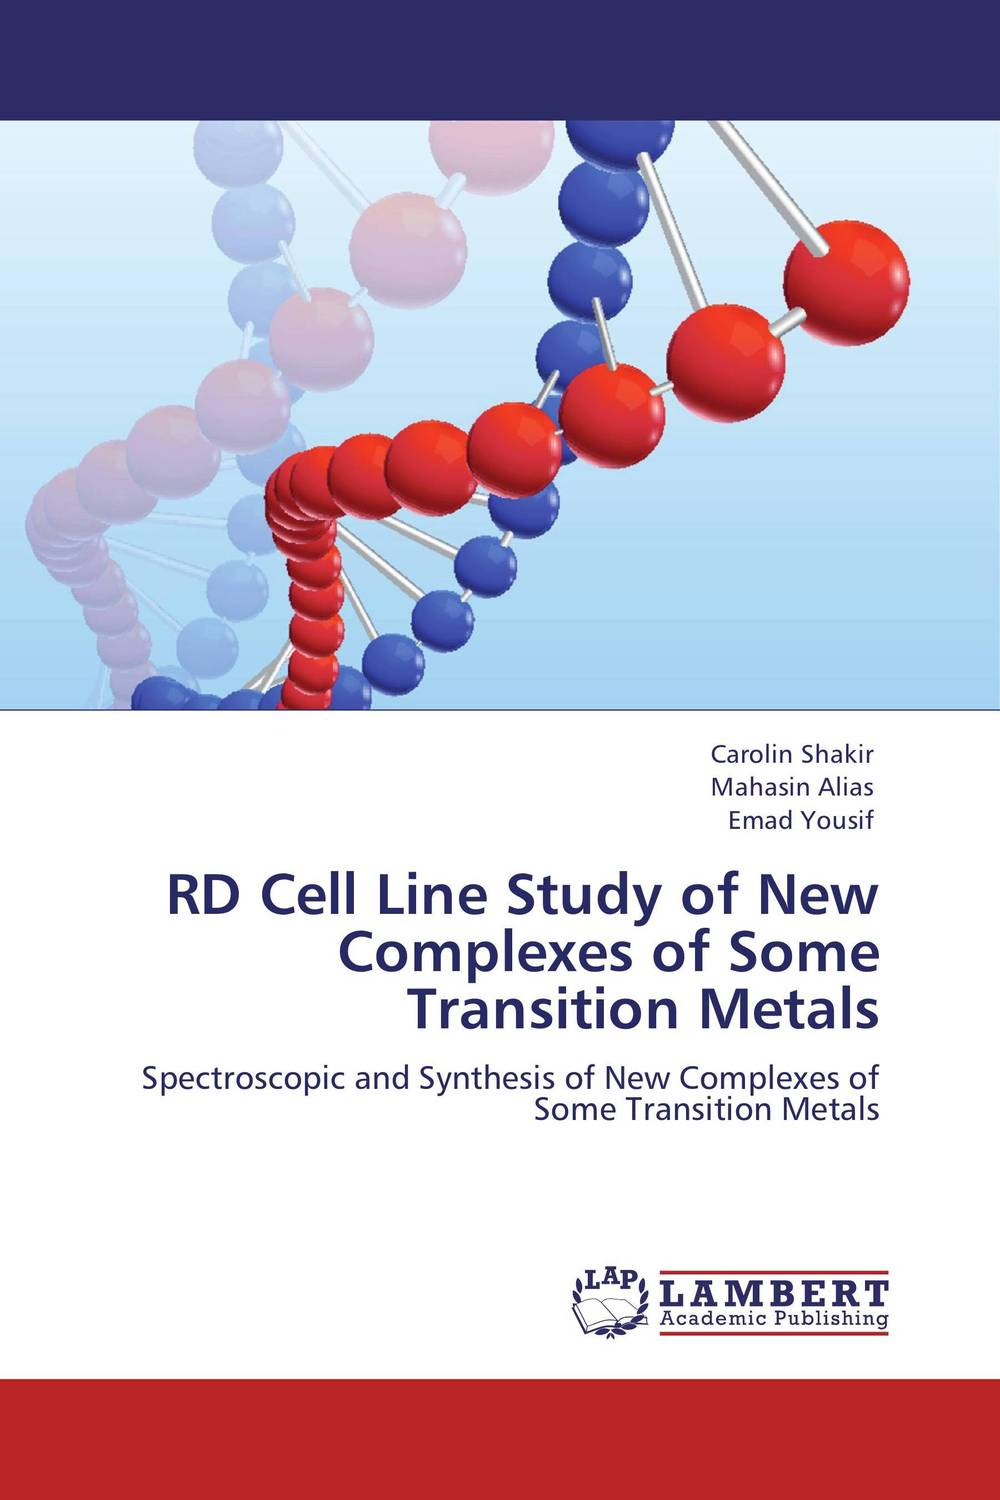 RD Cell Line Study of New Complexes of Some Transition Metals omar al obaidi transition metal complexes